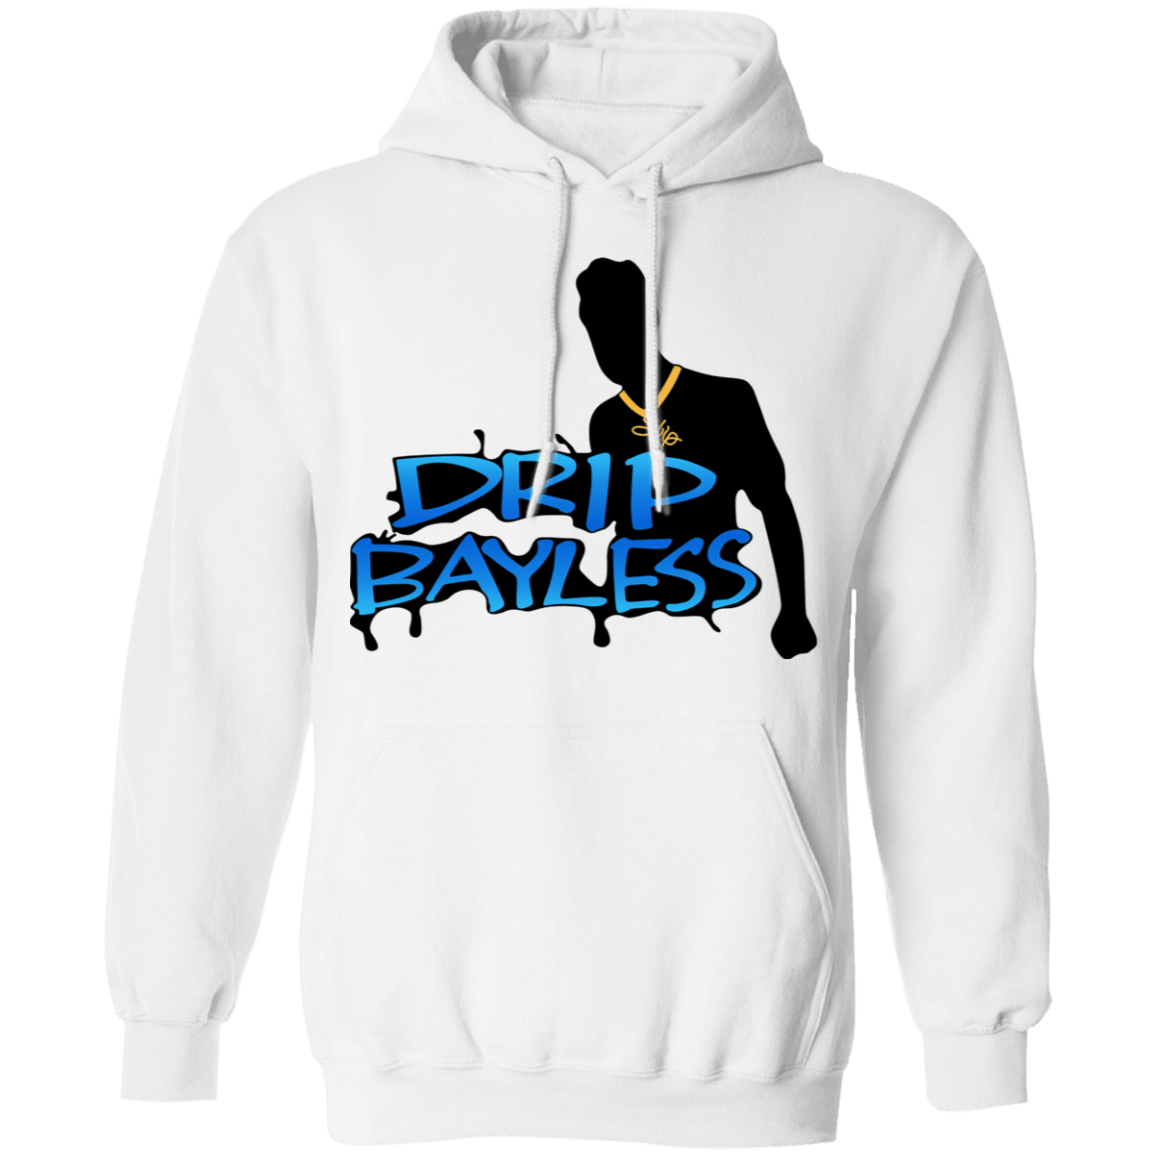 Snoop Dogg Drip Bayless T-Shirts, Hoodies, Tank 541-4744-80393819-23183 - Tee Ript